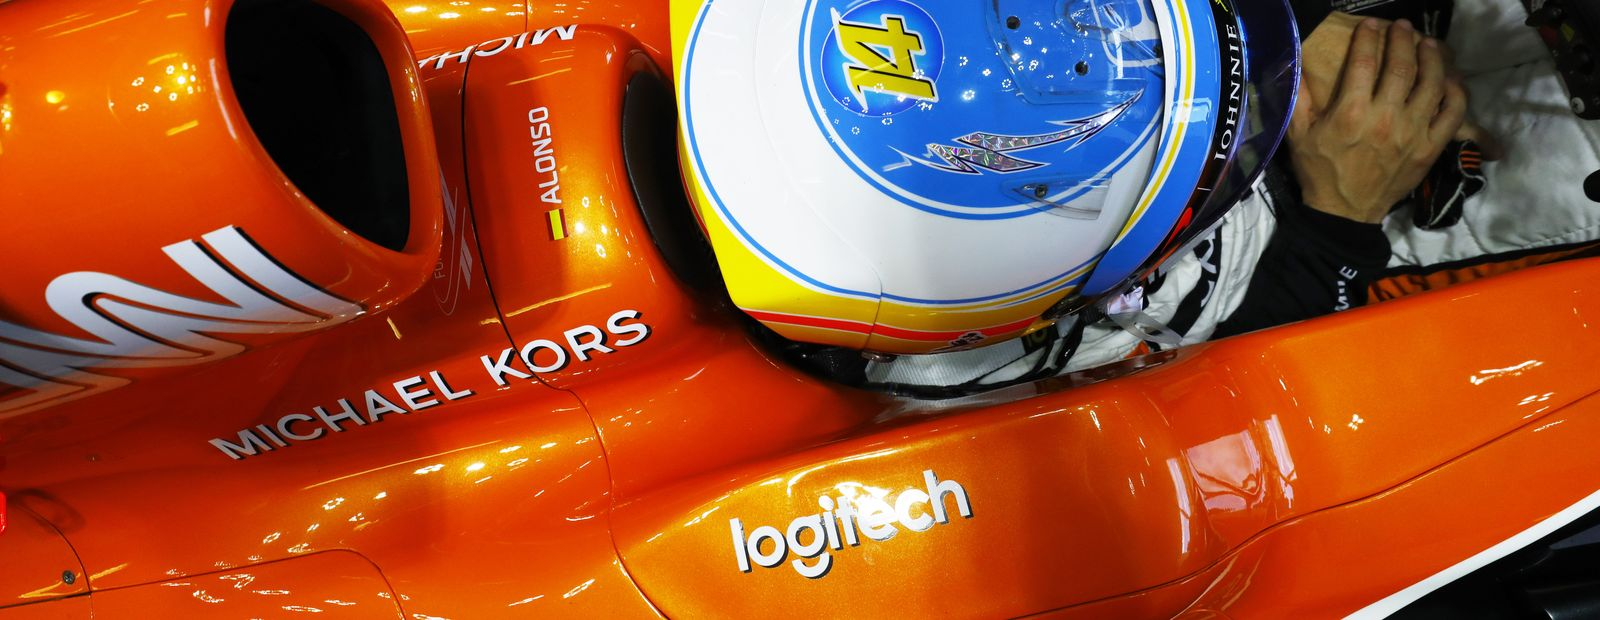 Logitech banner on McLaren-Honda F1 car